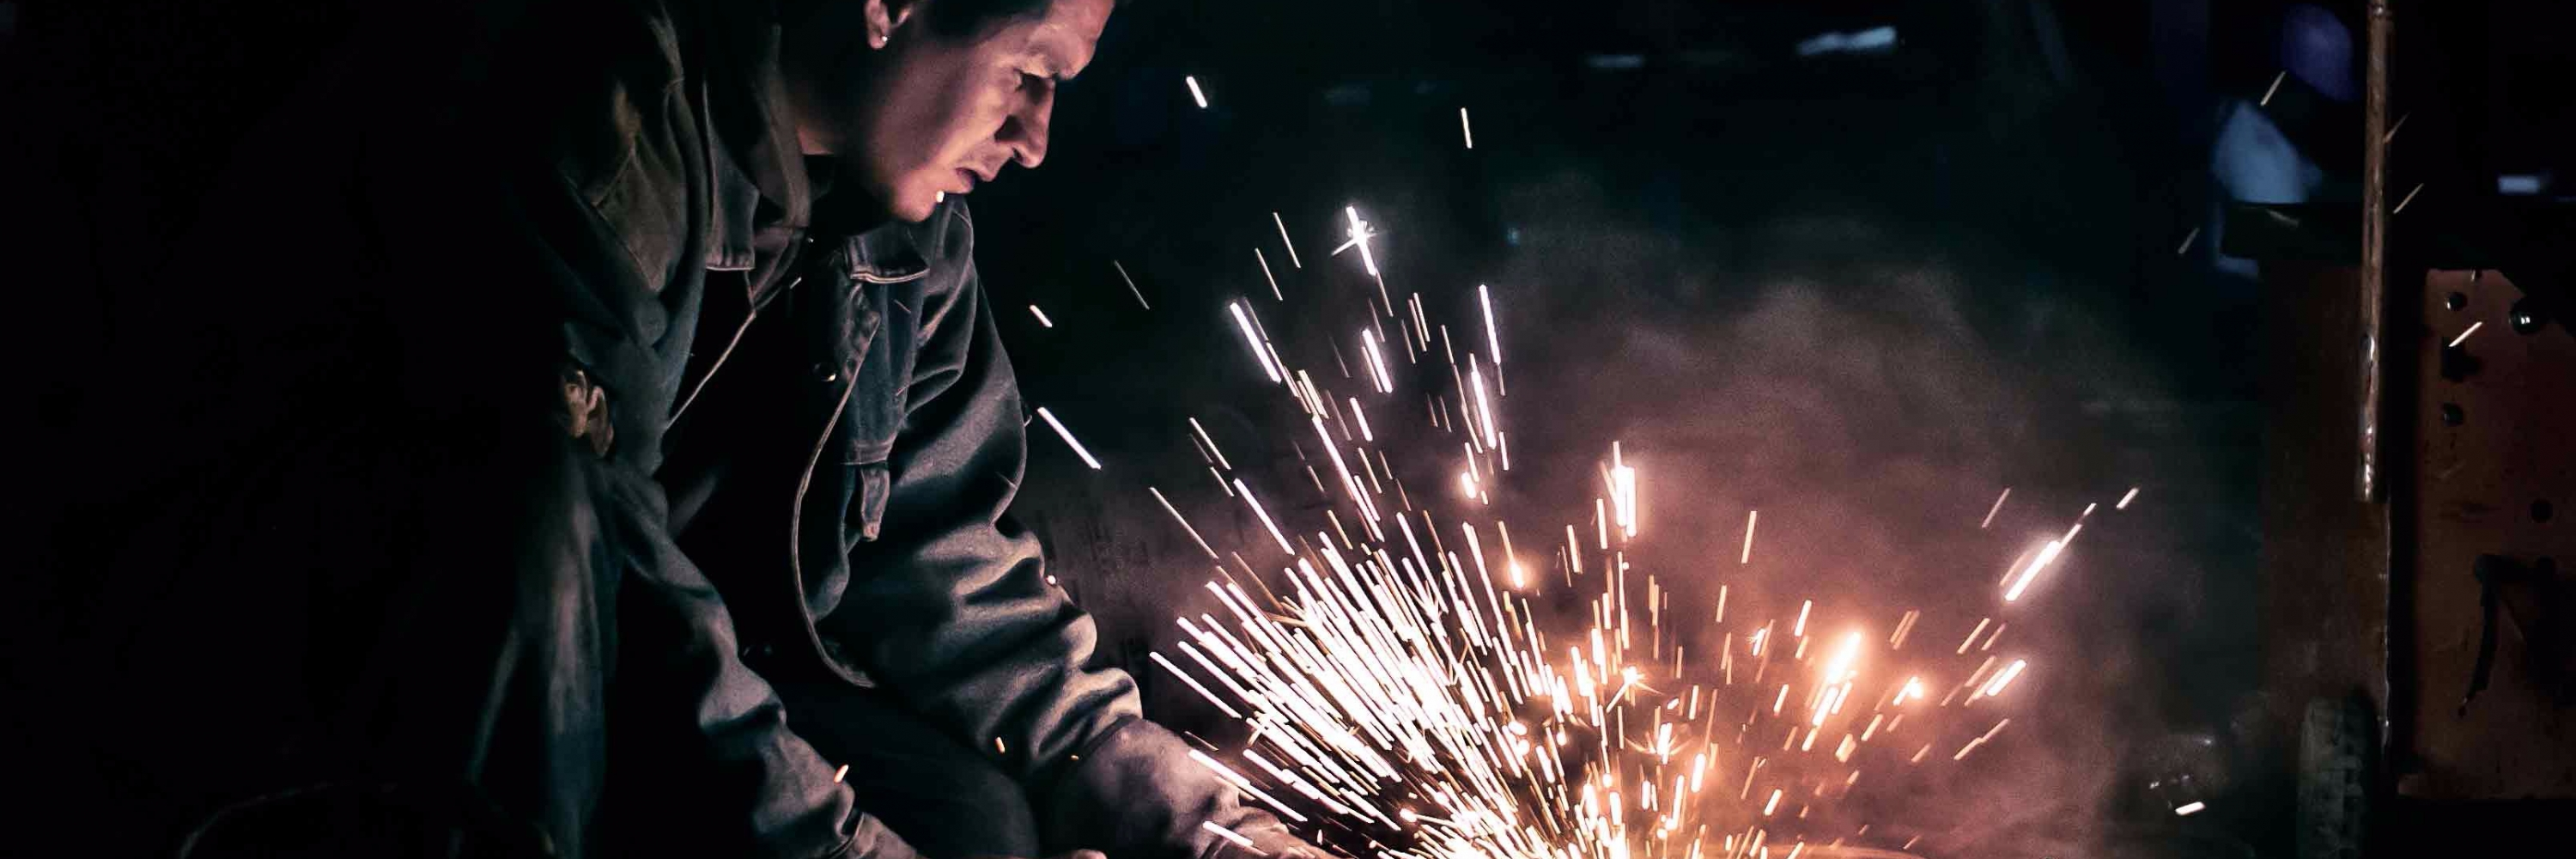 A man grinding metal in work overalls, sparks flying, showing why businesses might need Employers' Liability Insurance and Public Liability Insurance